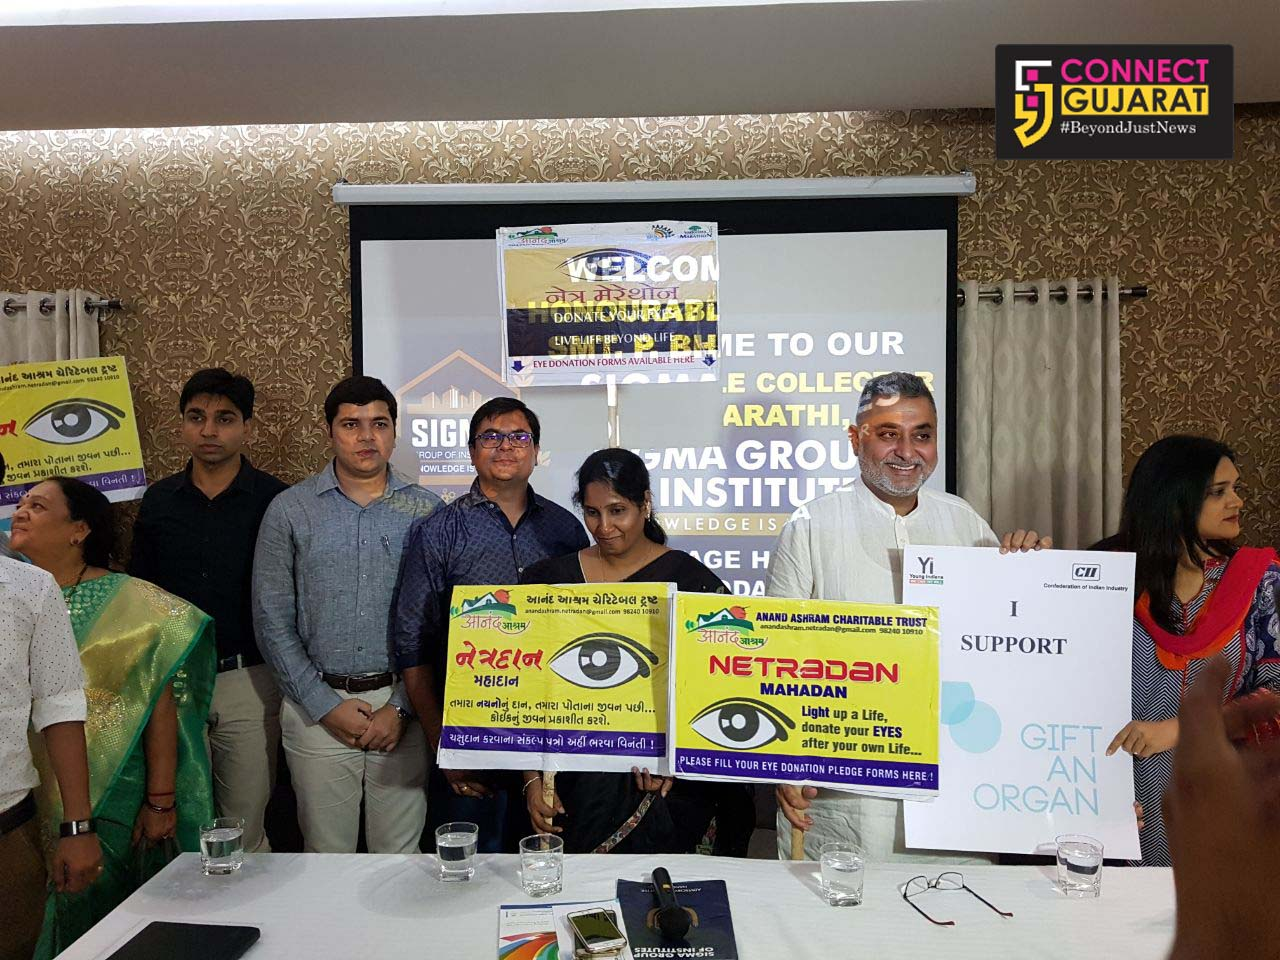 Vadodara collector signed consent form for eye donation and started the movement